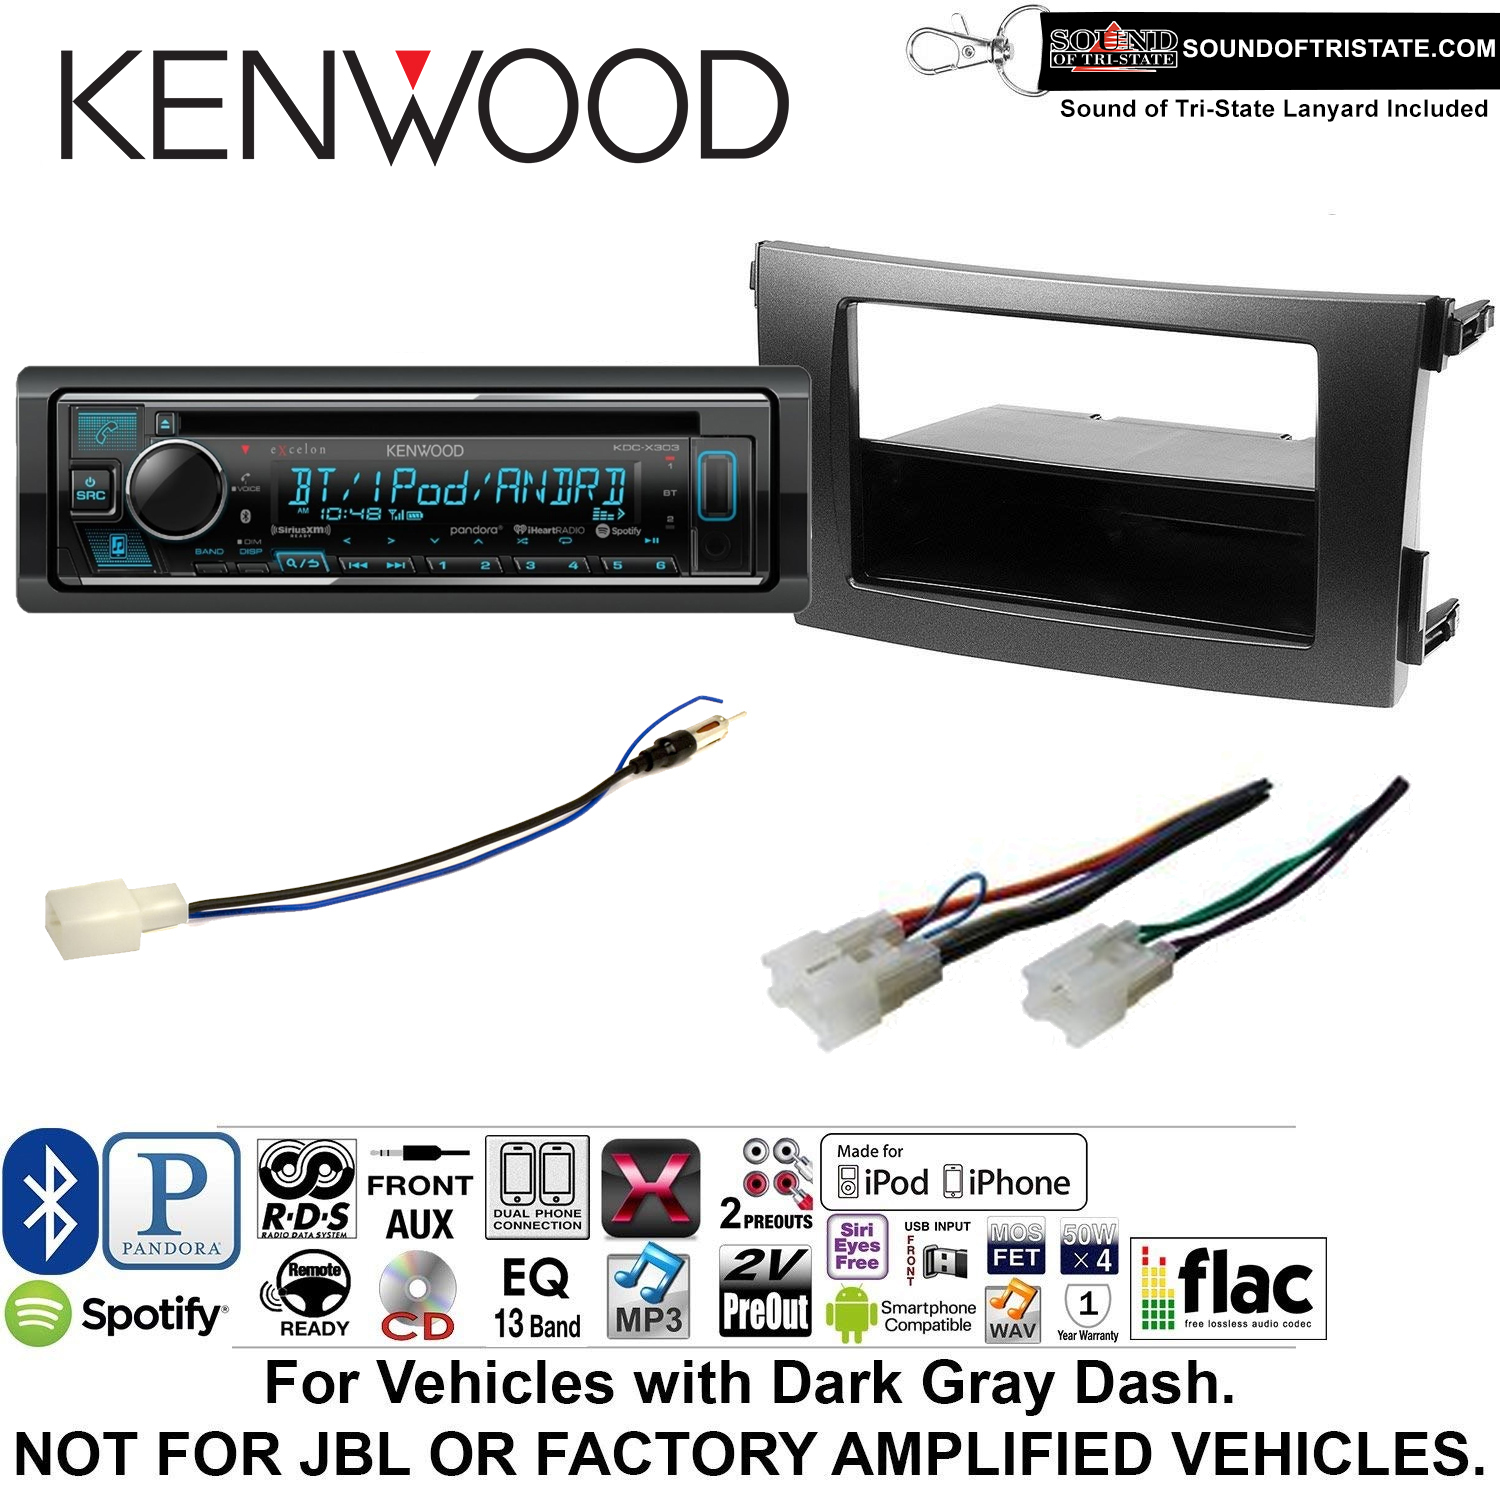 Kenwood KDCX303 Double Din Radio Install Kit with Bluetooth, CD Player, USB/AUX Fits 2009-2013 Non Amplified Toyota Corolla (Dark Gray) and a SOTS lanyard included